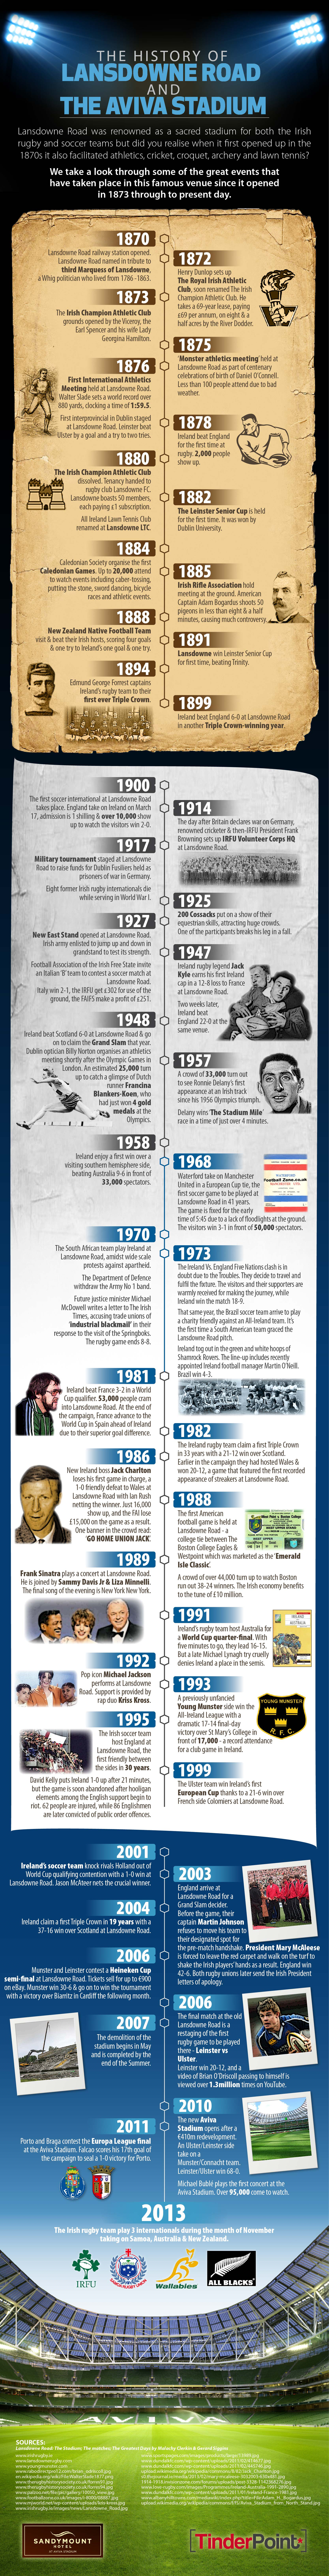 The-History-of-Lansdowne-Road-and-The-Aviva-Stadium-Infographic1